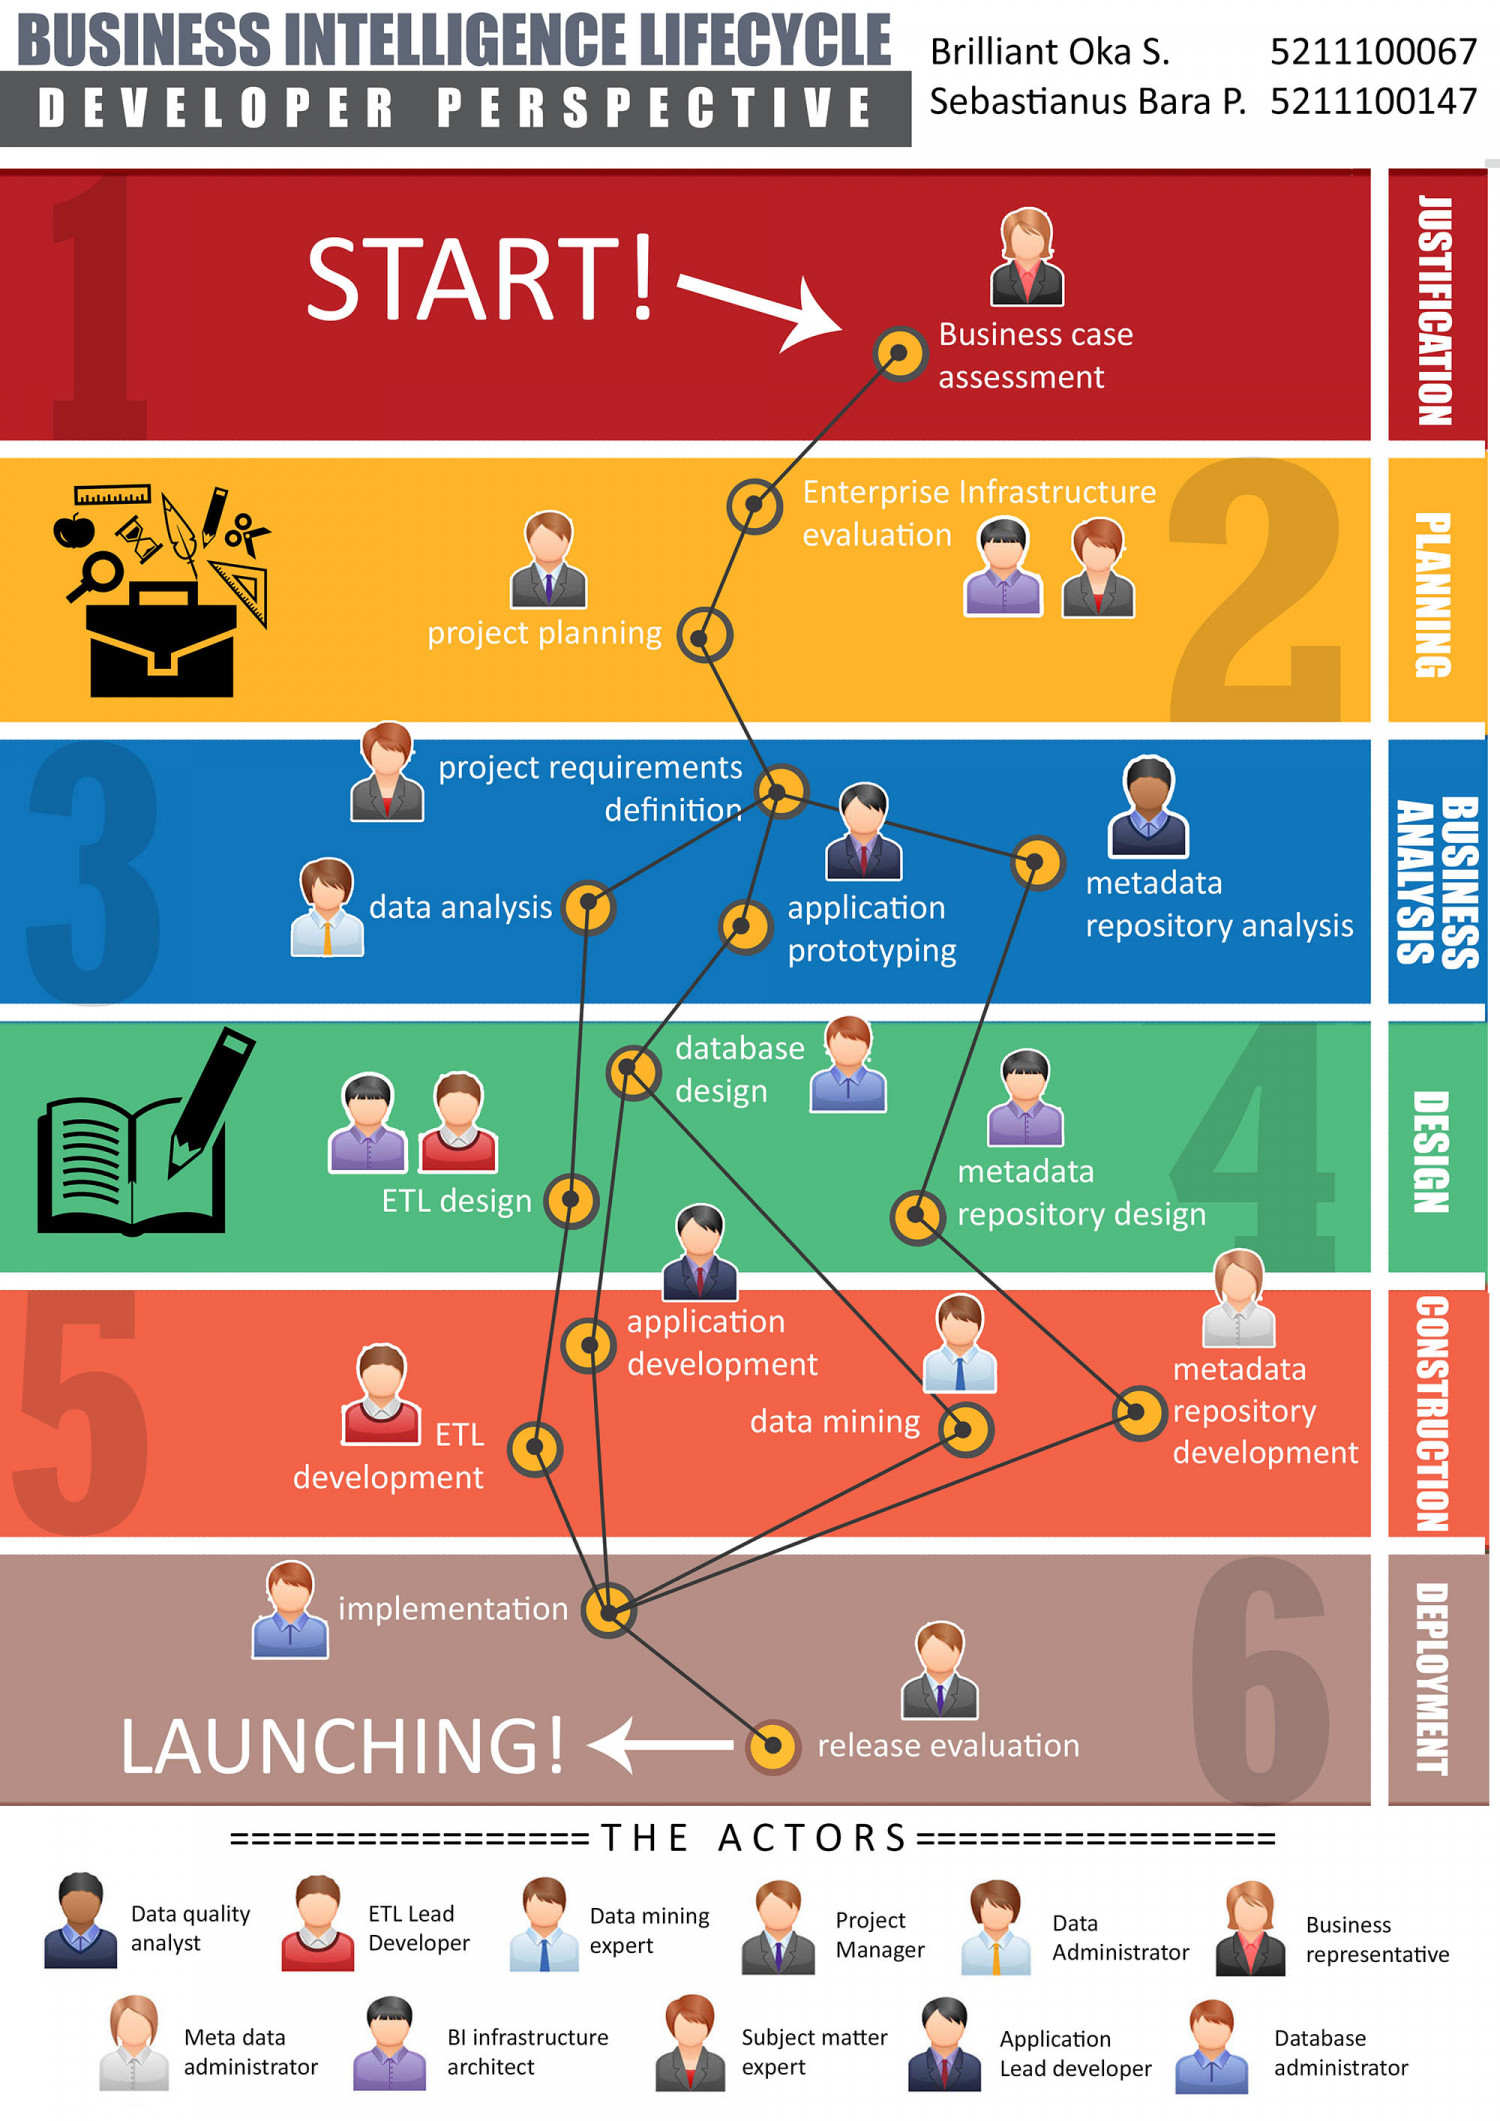 Business Intelligence Lifecycle Infographic